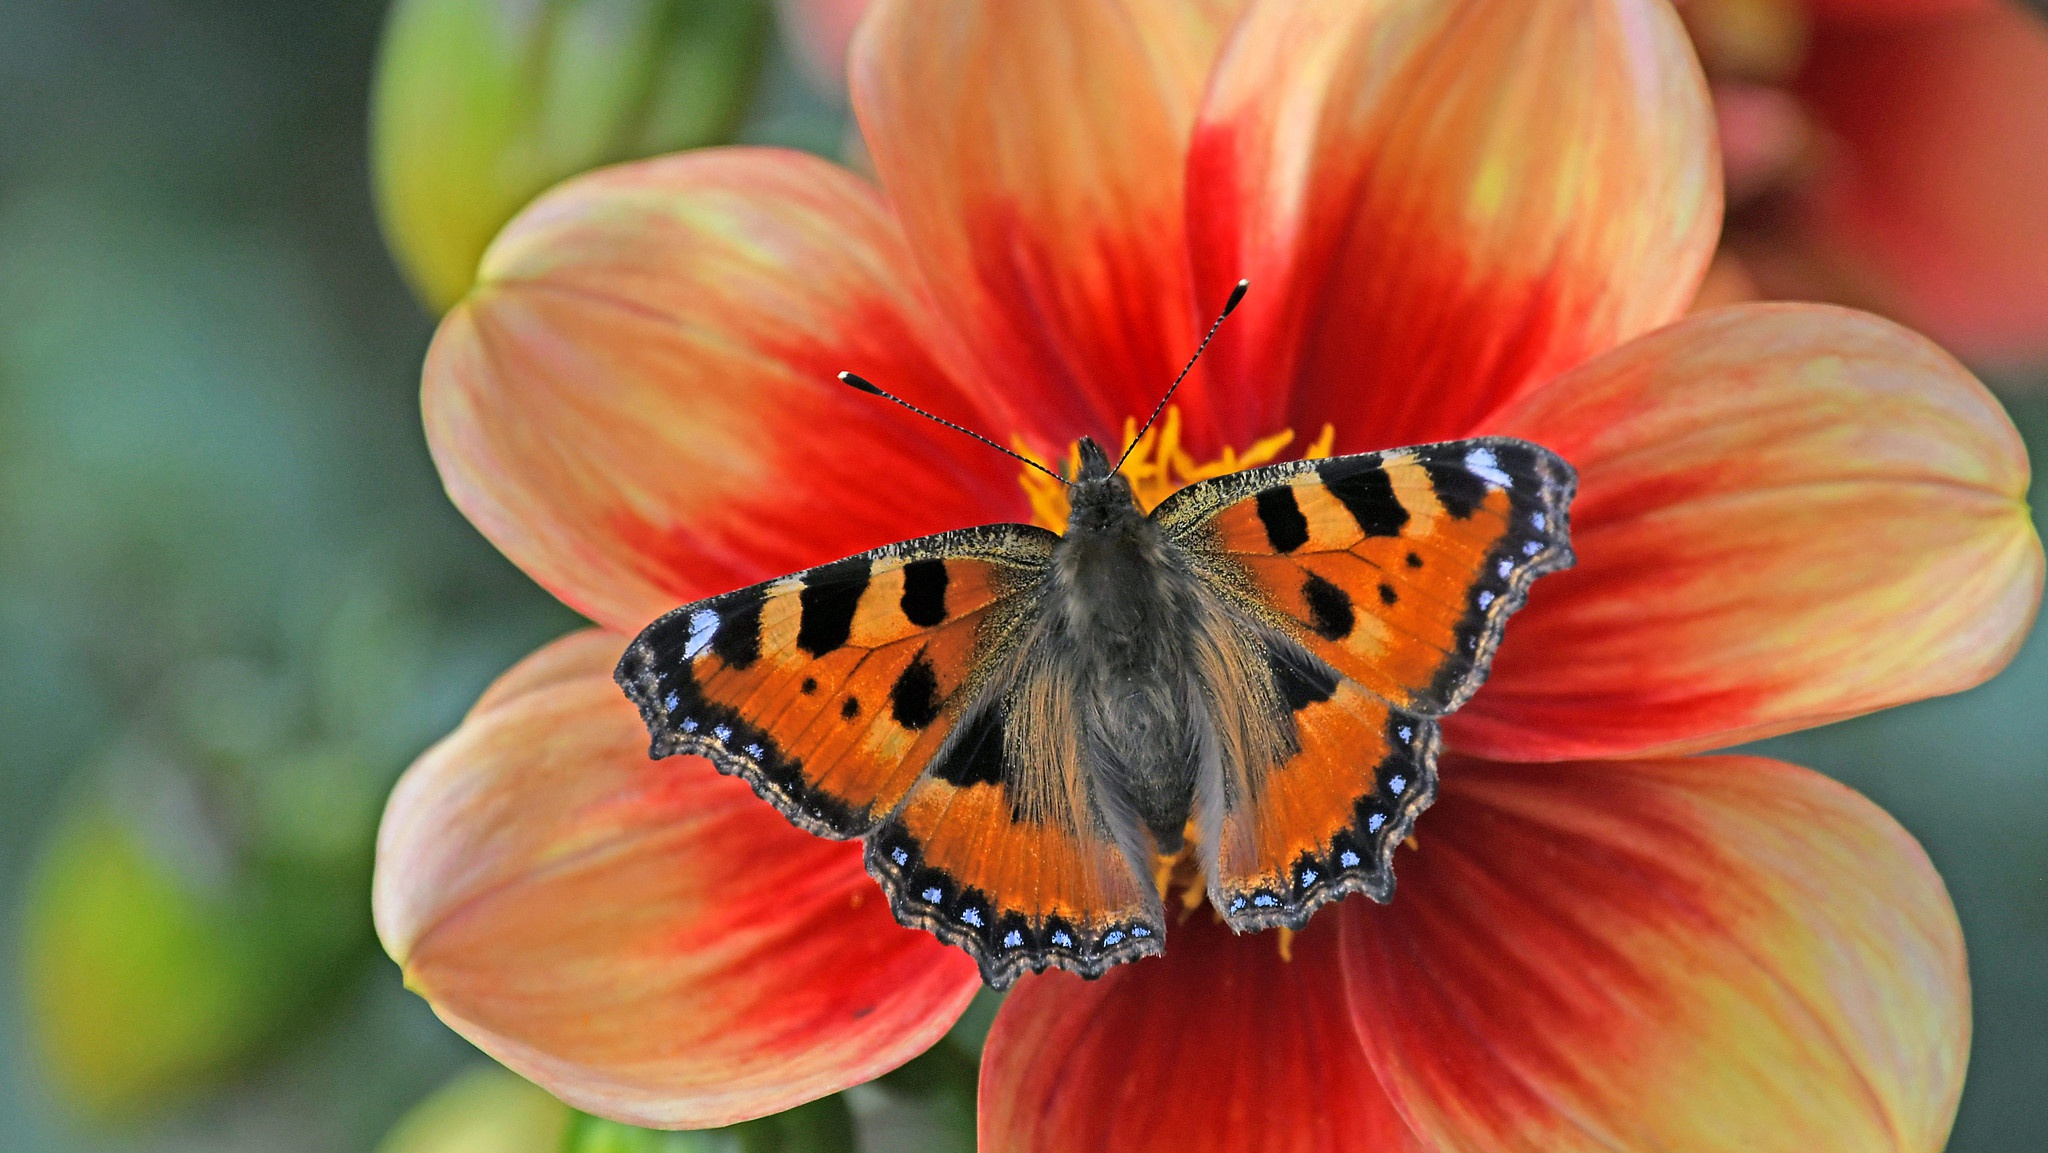 Butterfly Flower Insect Macro 2048x1153